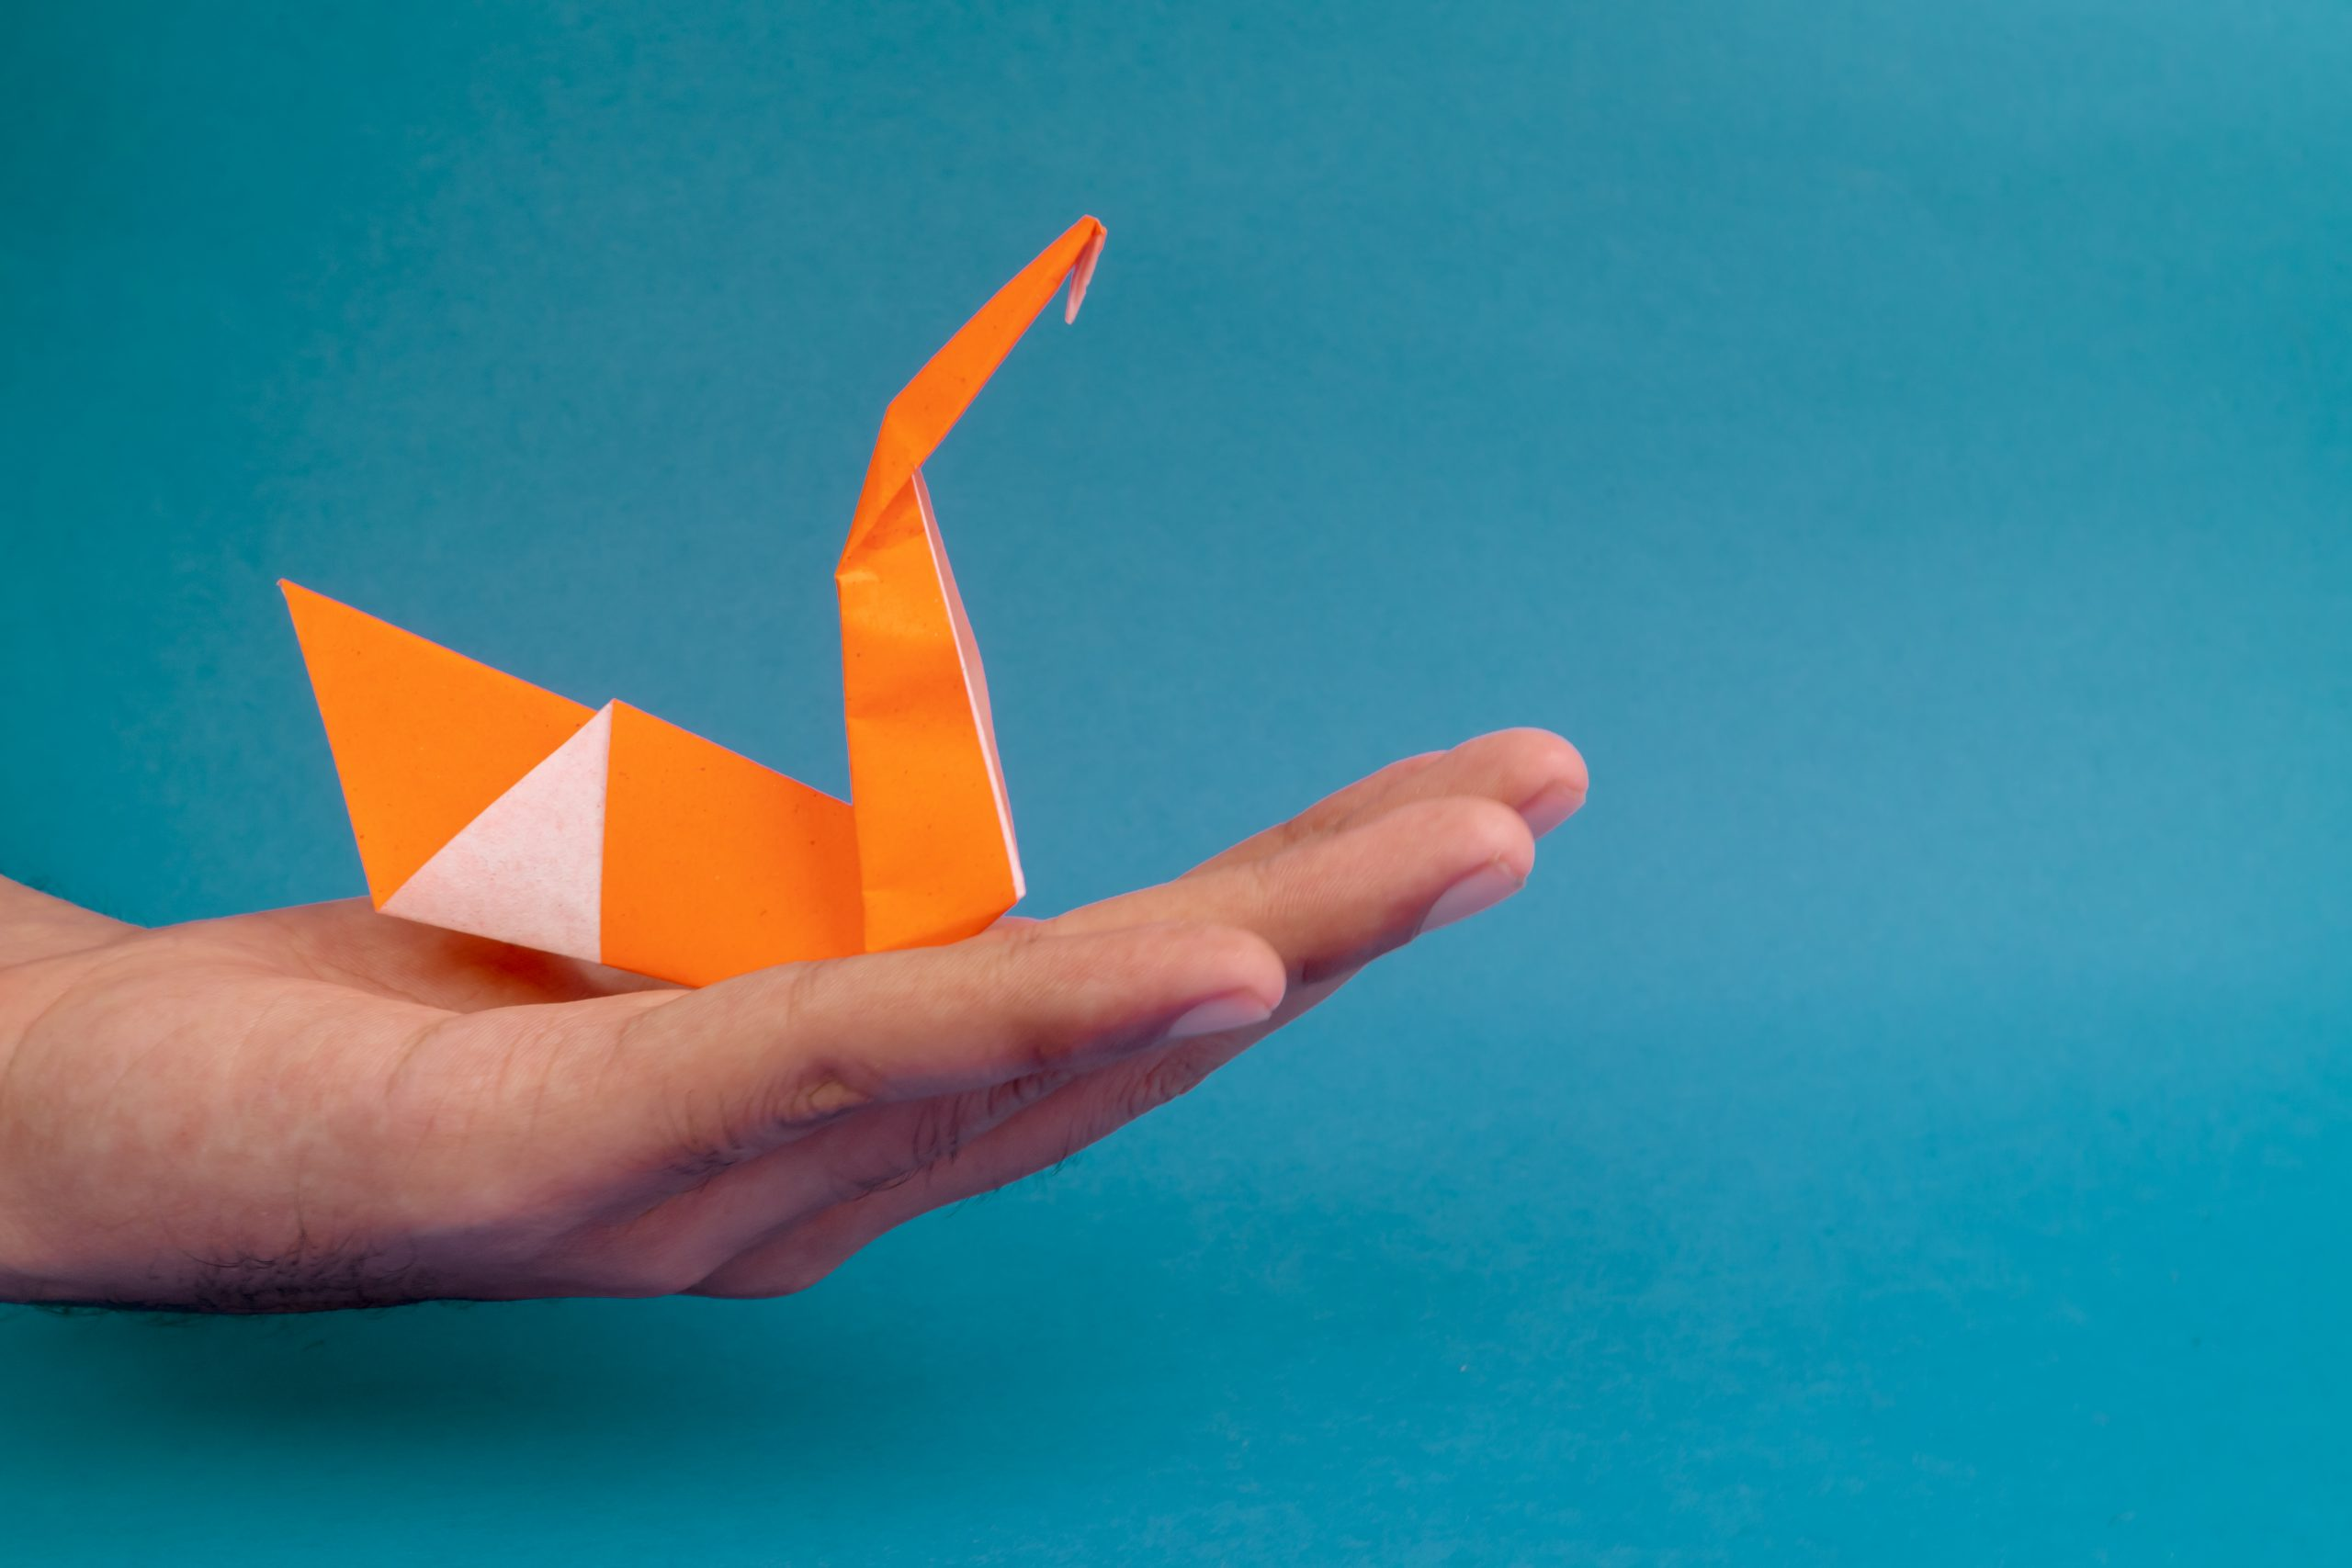 Swan origami on hand